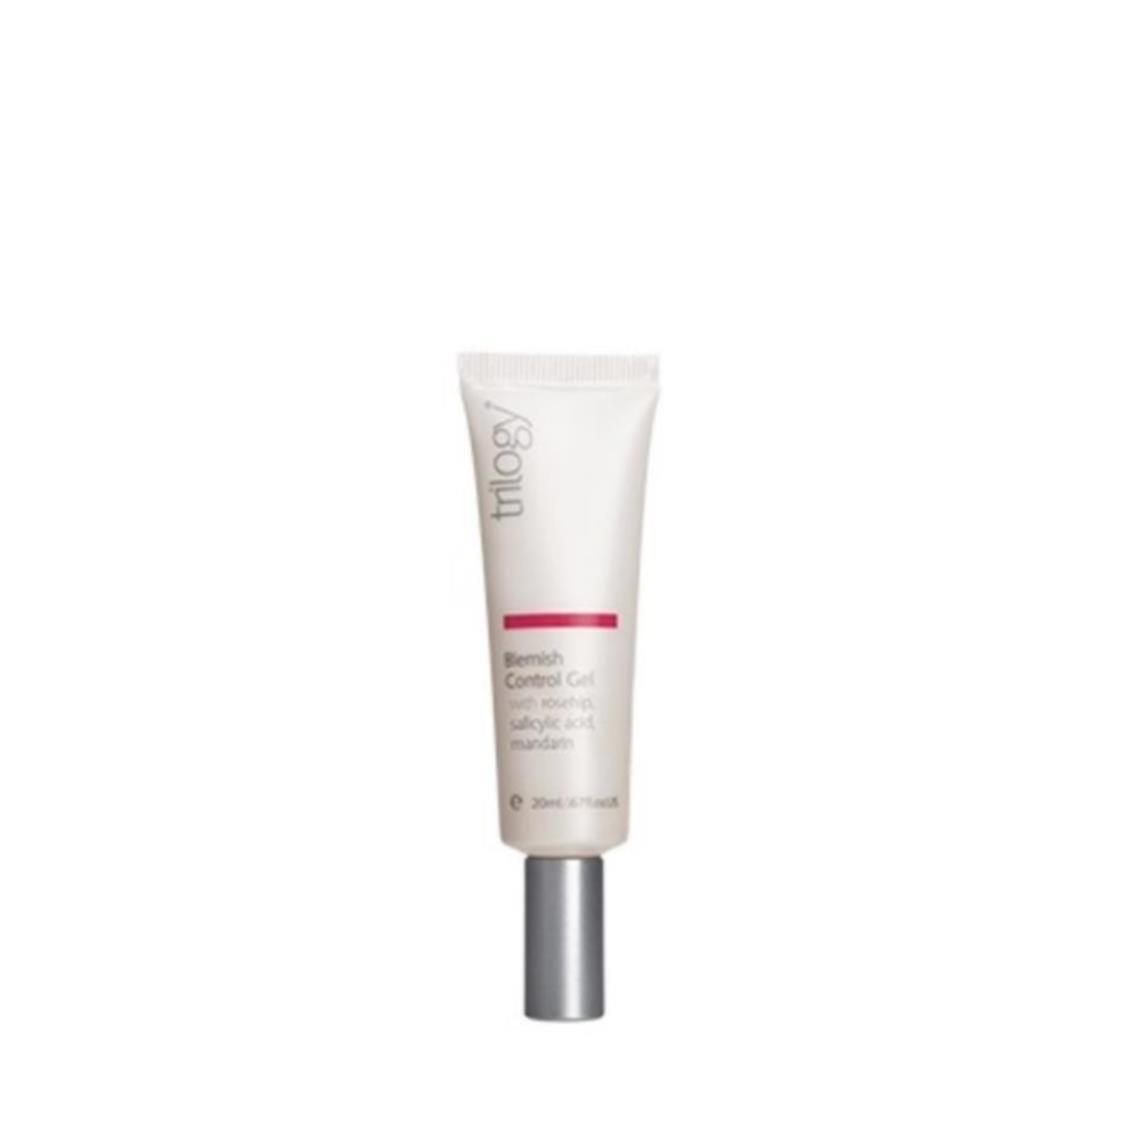 Blemish Control Gel 20ml